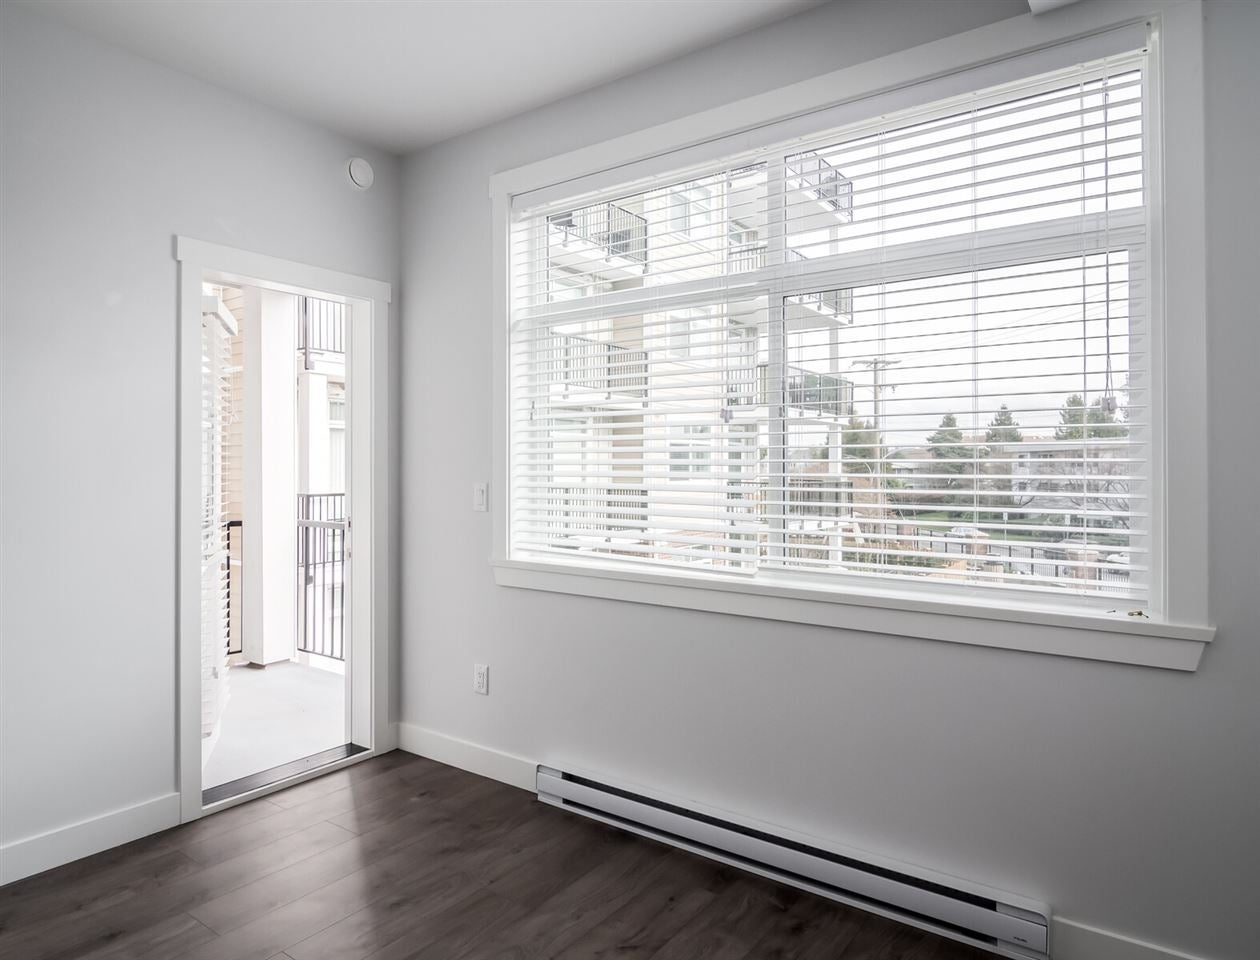 209 20696 EASTLEIGH CRESCENT - Langley City Apartment/Condo for sale, 1 Bedroom (R2560972) - #12